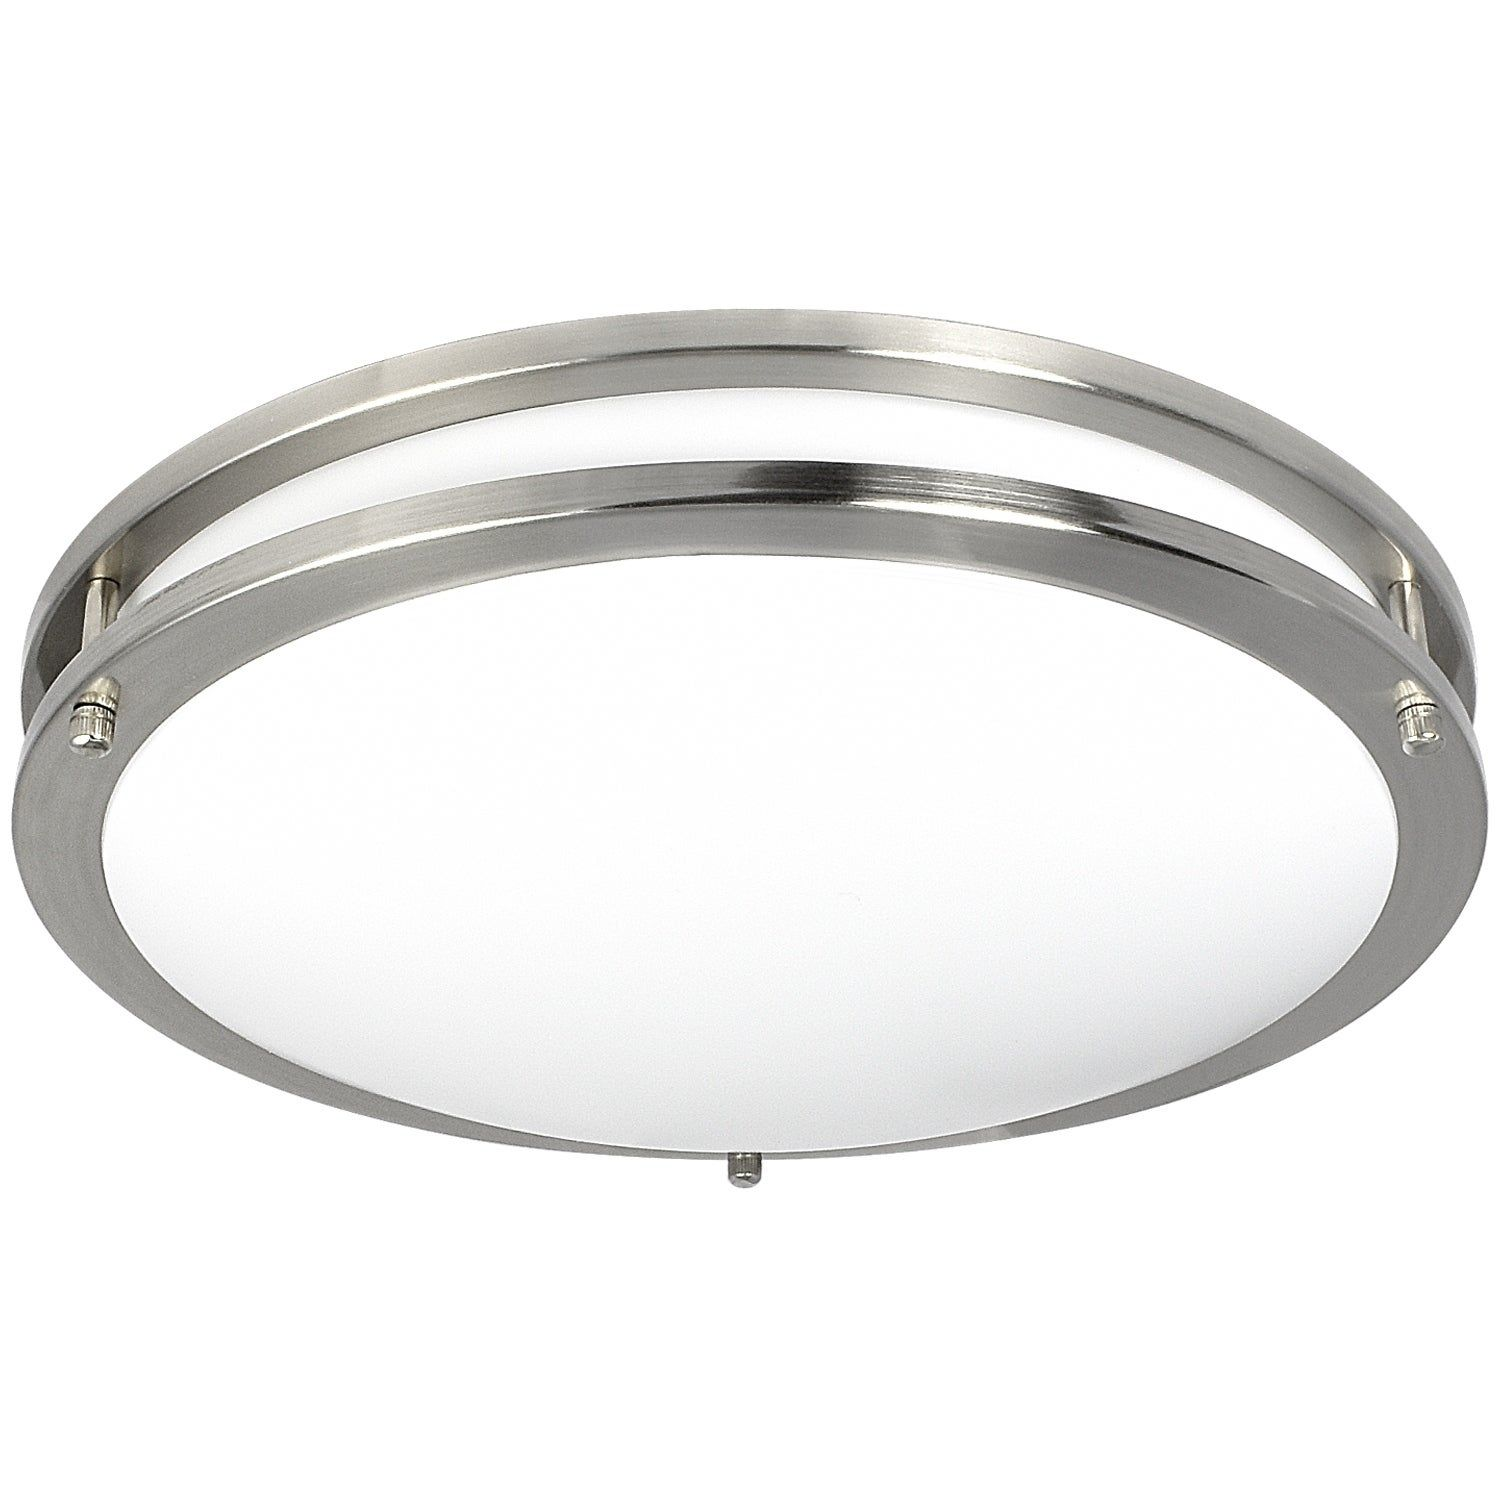 Overstock Com Online Shopping Bedding Furniture Electronics Jewelry Clothing More Flush Mount Ceiling Lights Led Flush Mount Flush Mount Ceiling [ 1500 x 1500 Pixel ]